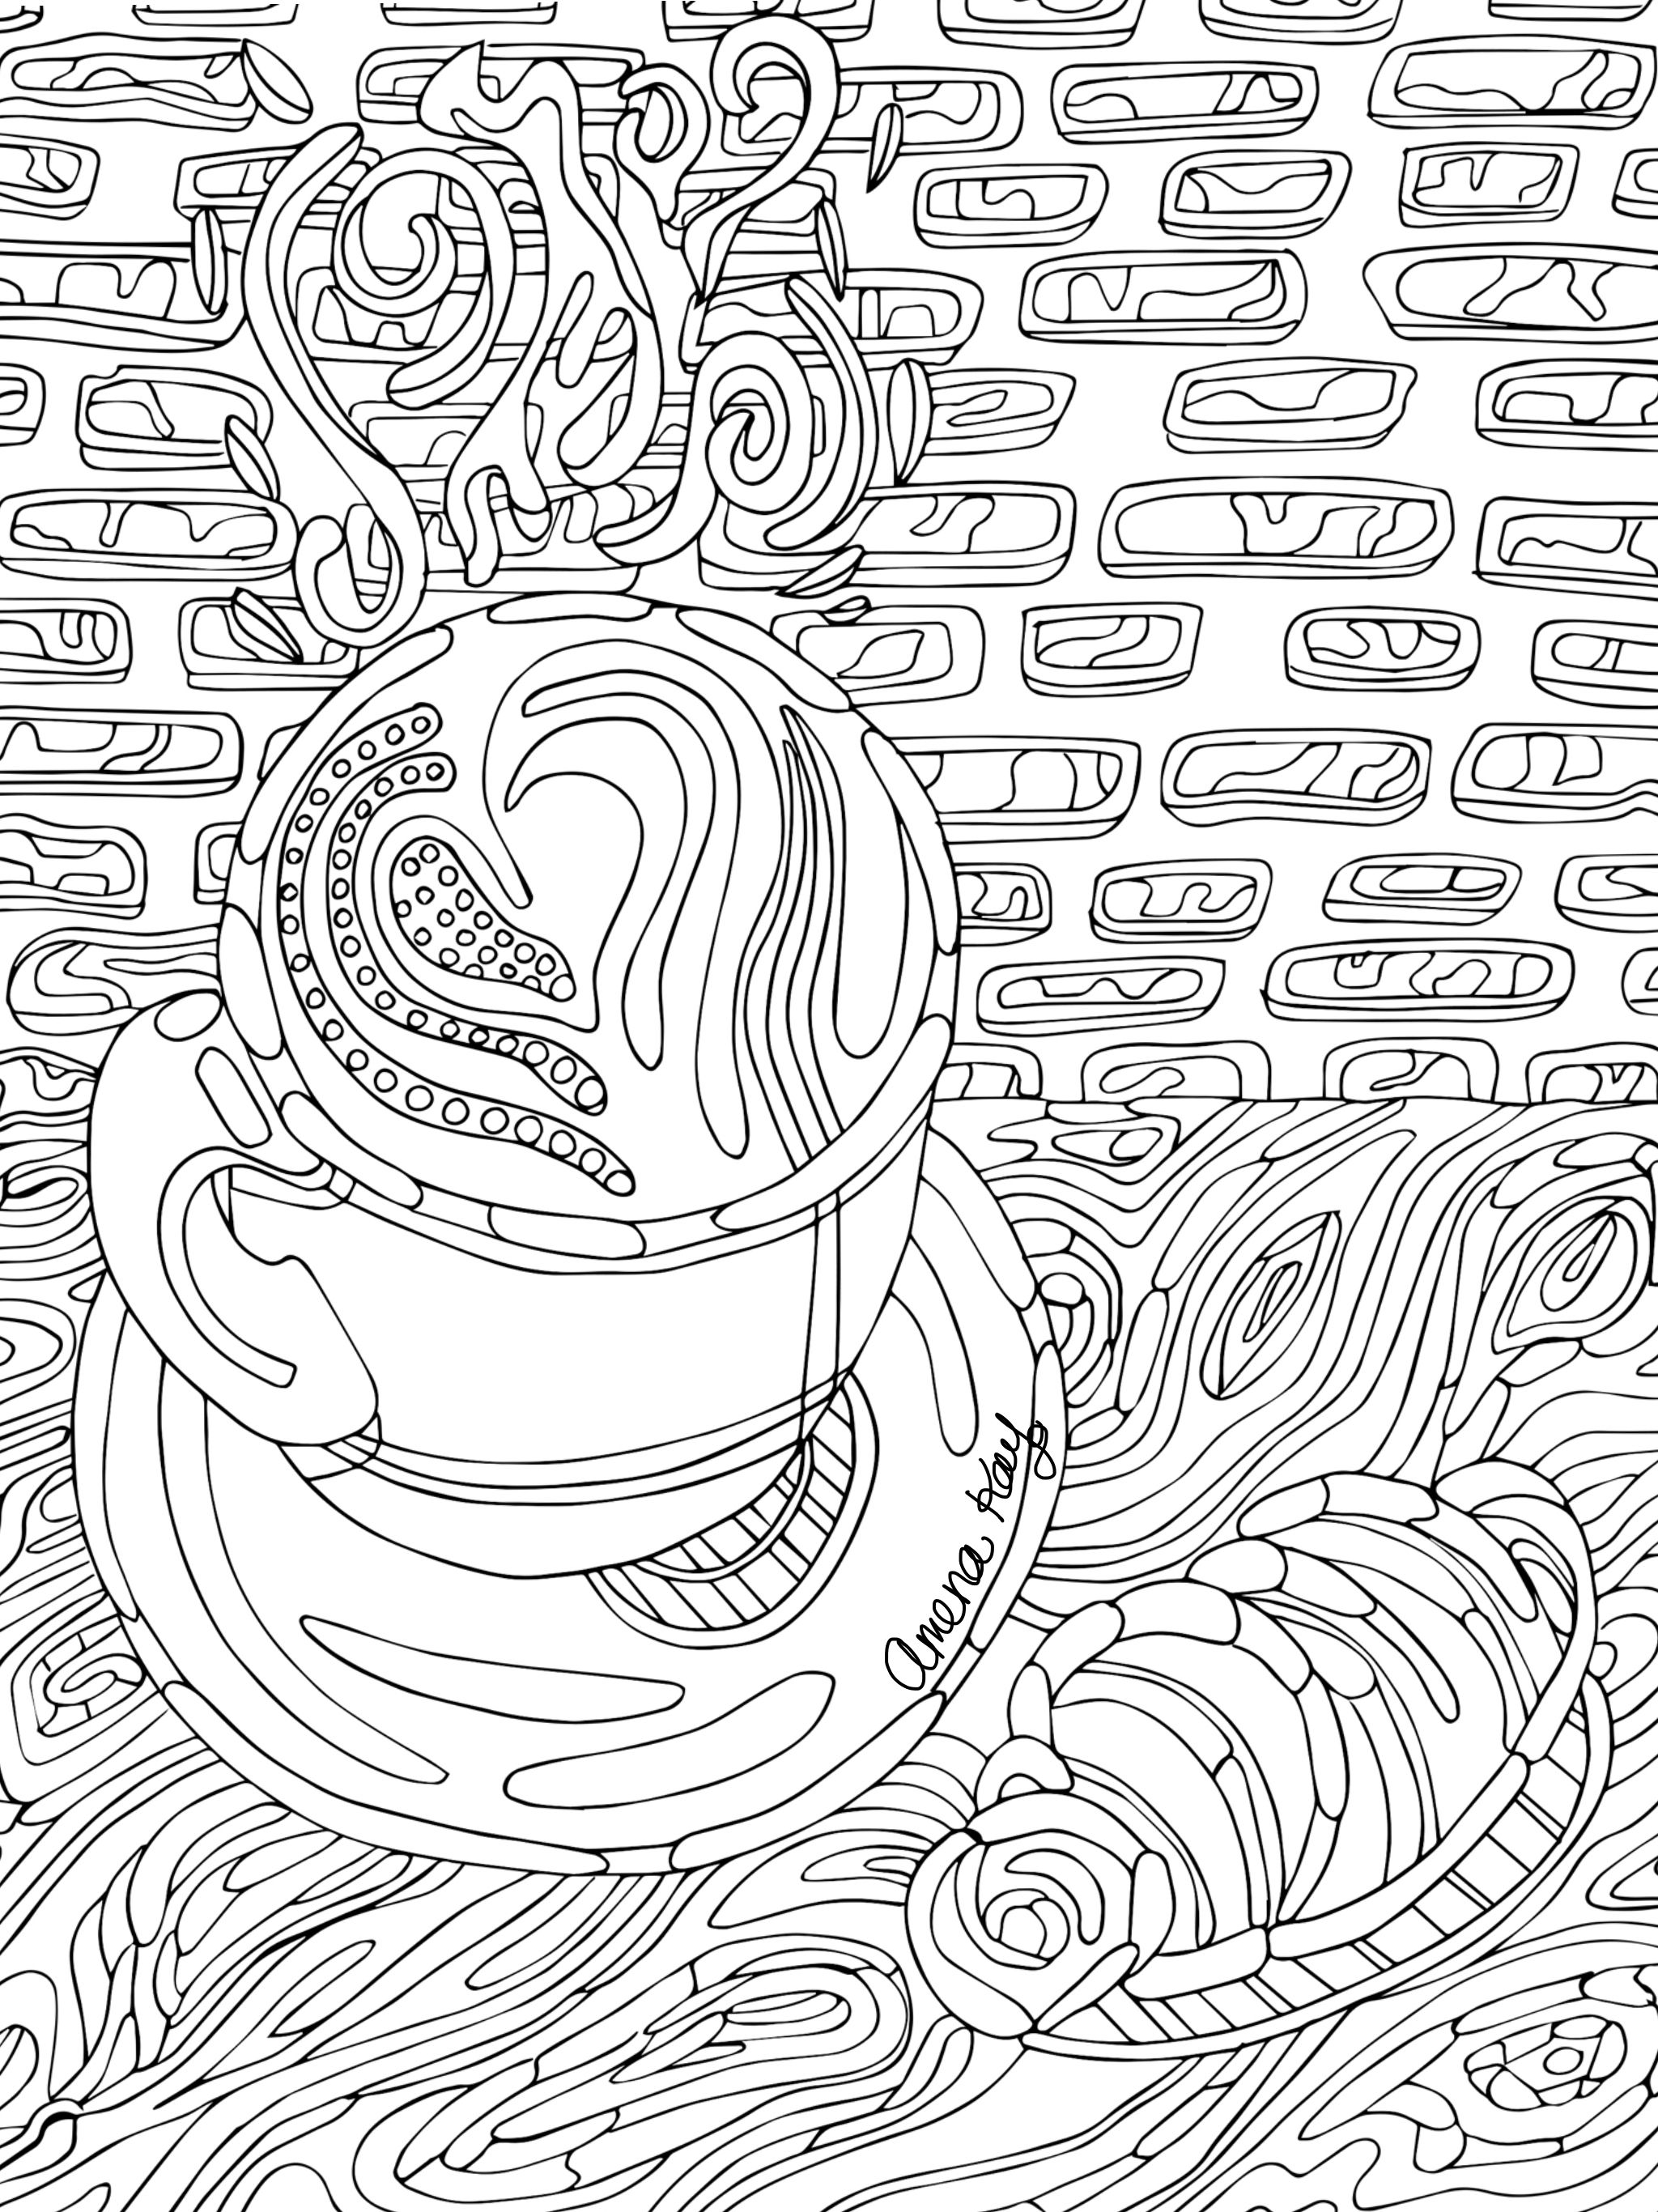 Free Hot Chocolate Coloring Page by Amena Kay Fine Art. Follow on ...